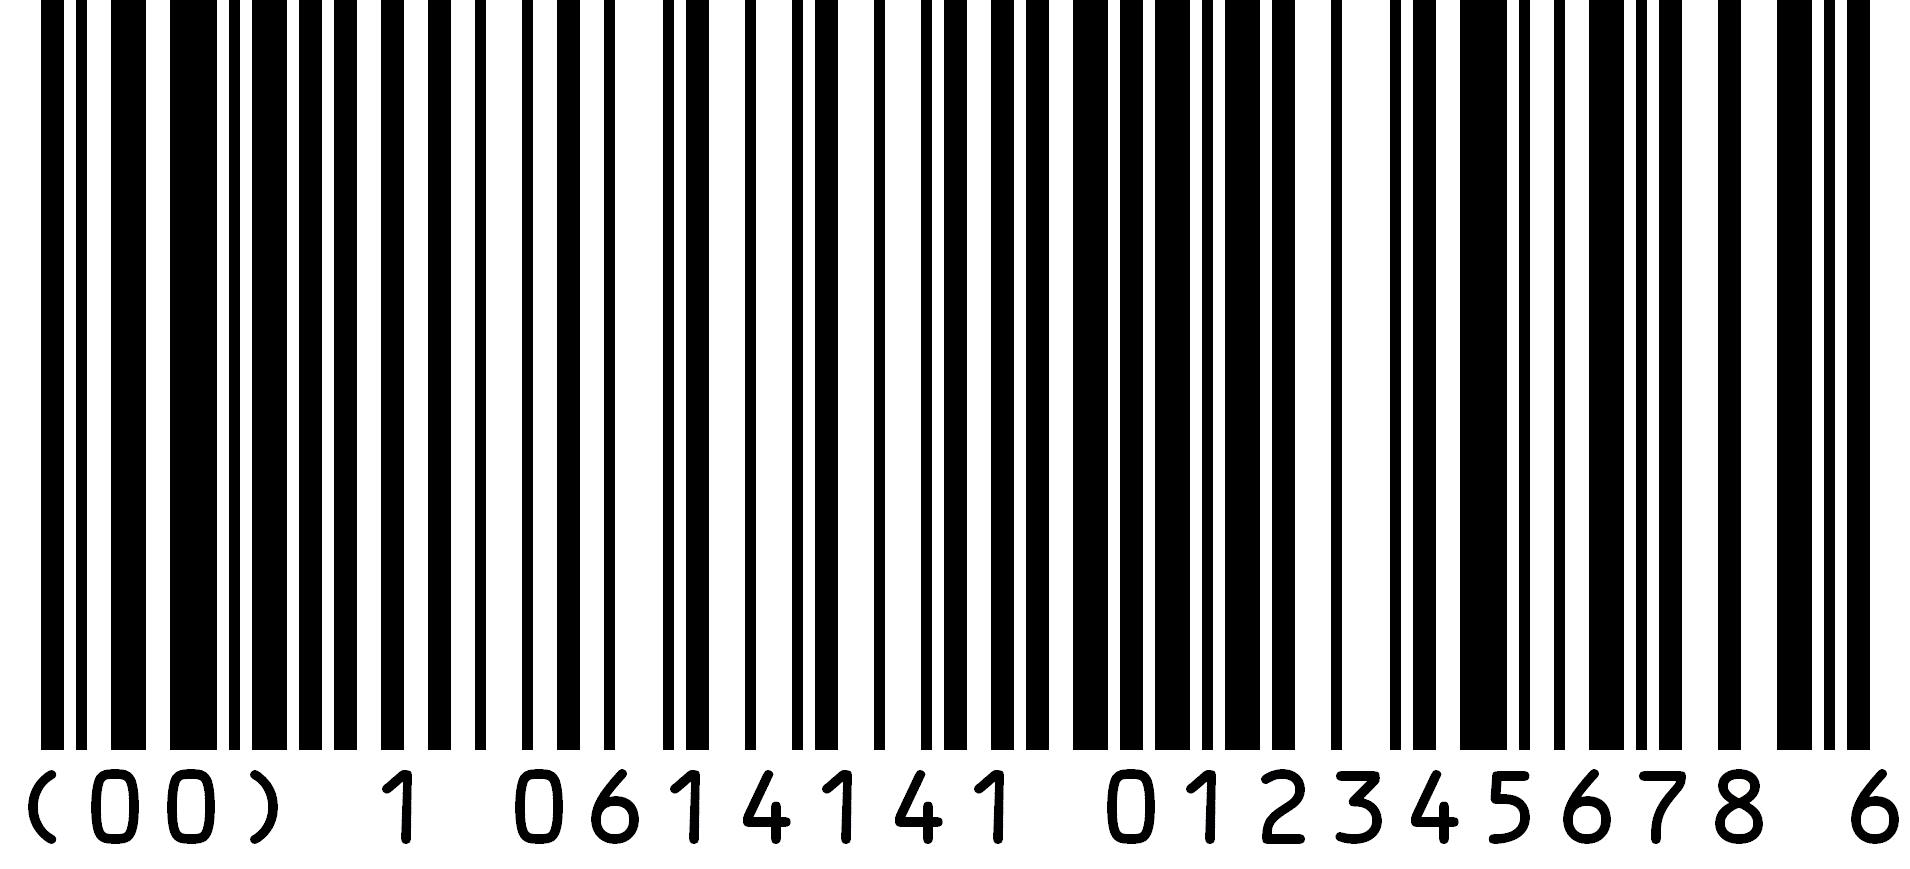 Vertical Barcode Without Numbers Wwwpixsharkcom